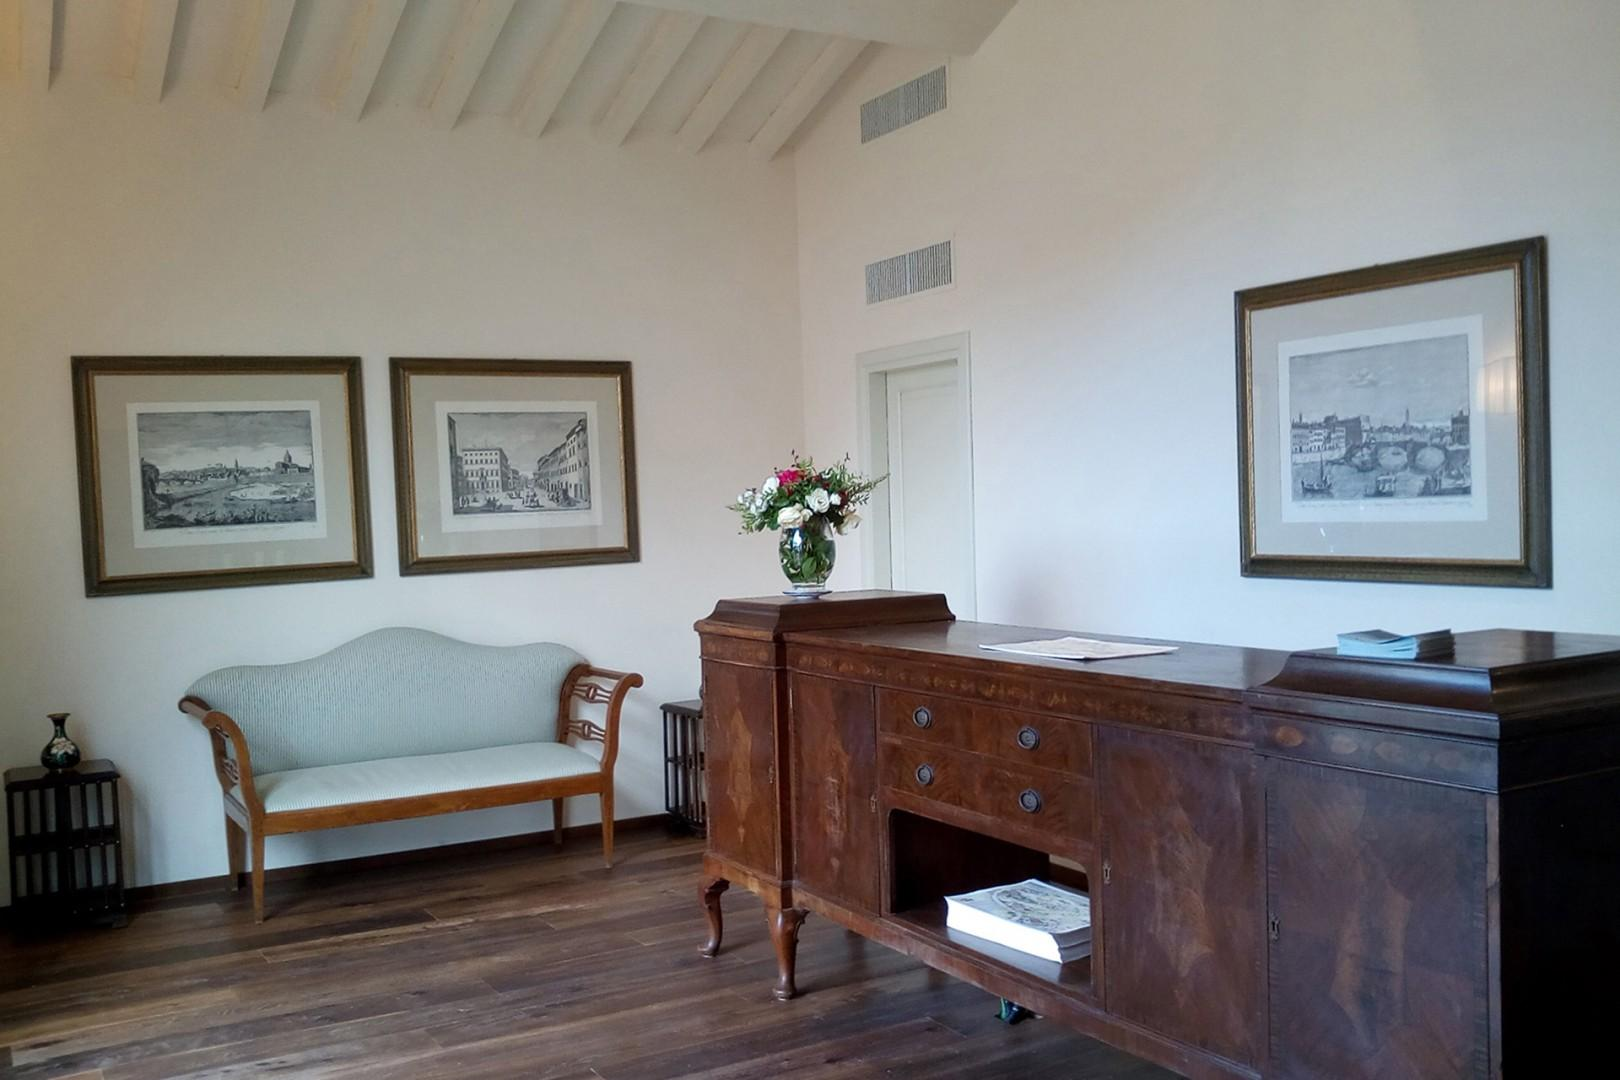 Welcome office staff will greet you on arrival, familiarize you with the villa, and the estate.